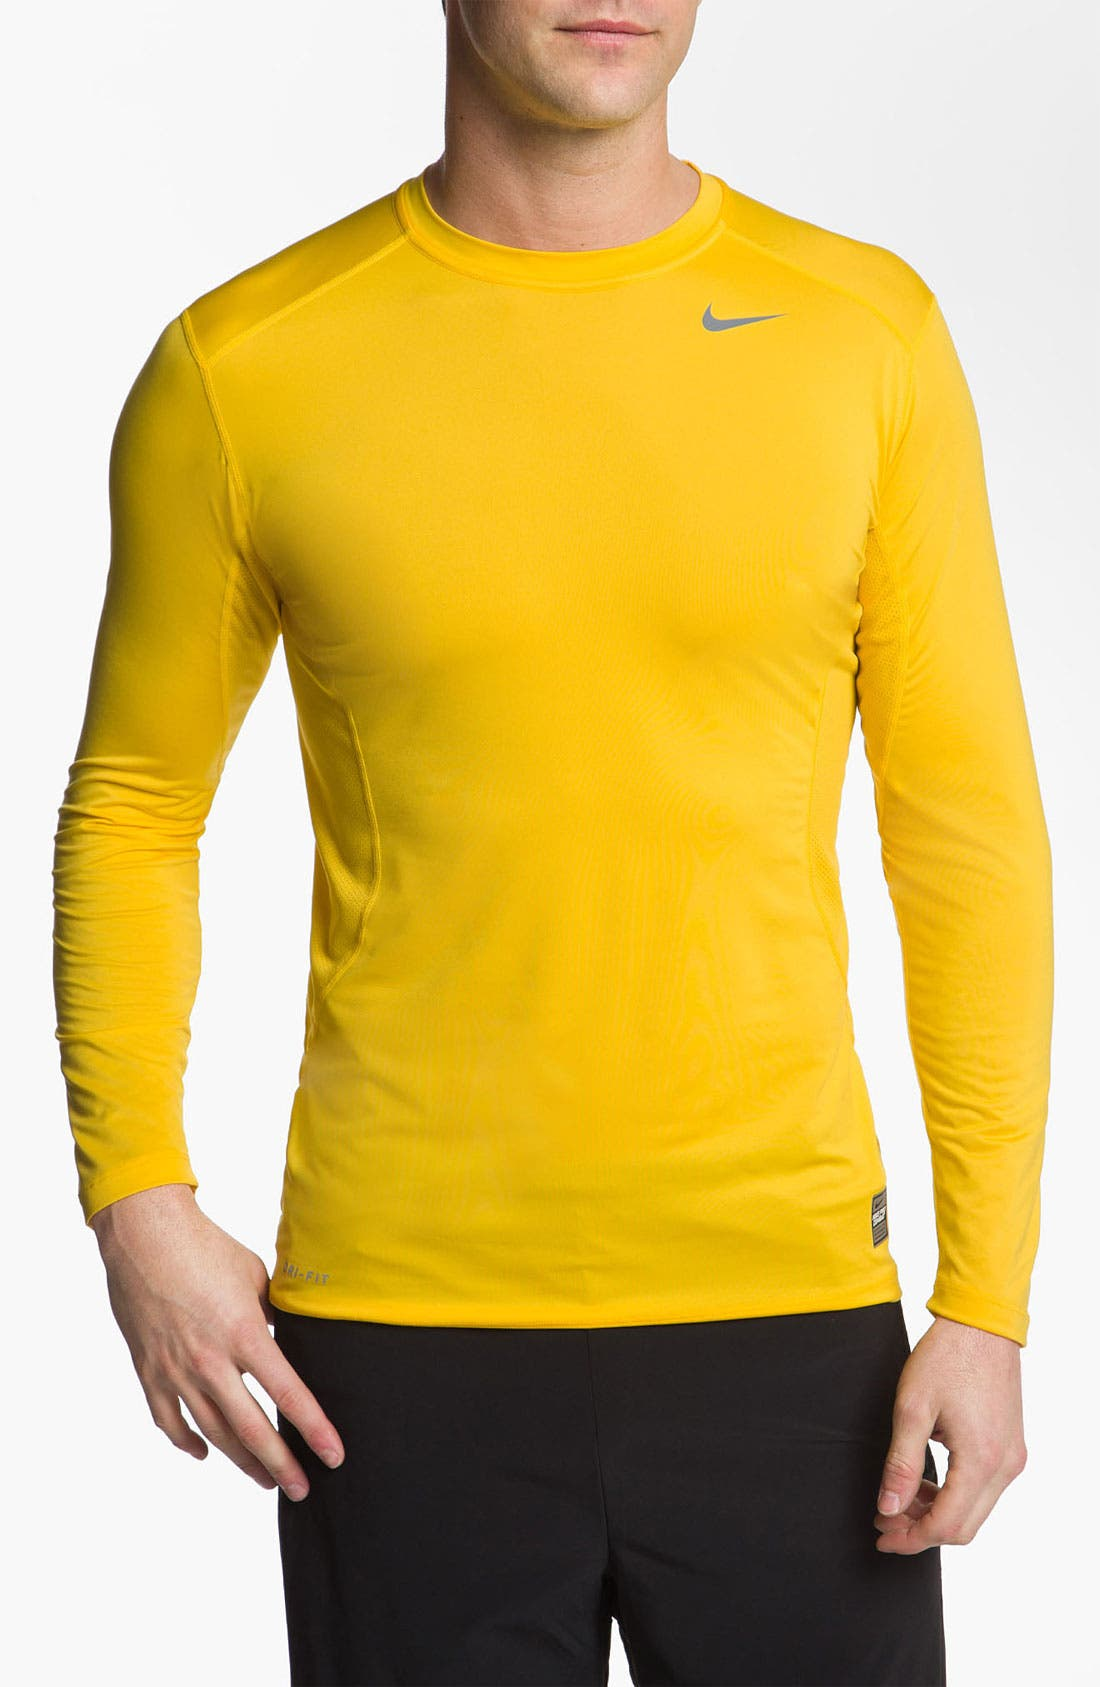 Main Image - Nike 'Core 2.0' Fitted Long Sleeve T-Shirt (Regular Retail Price: $32.00)